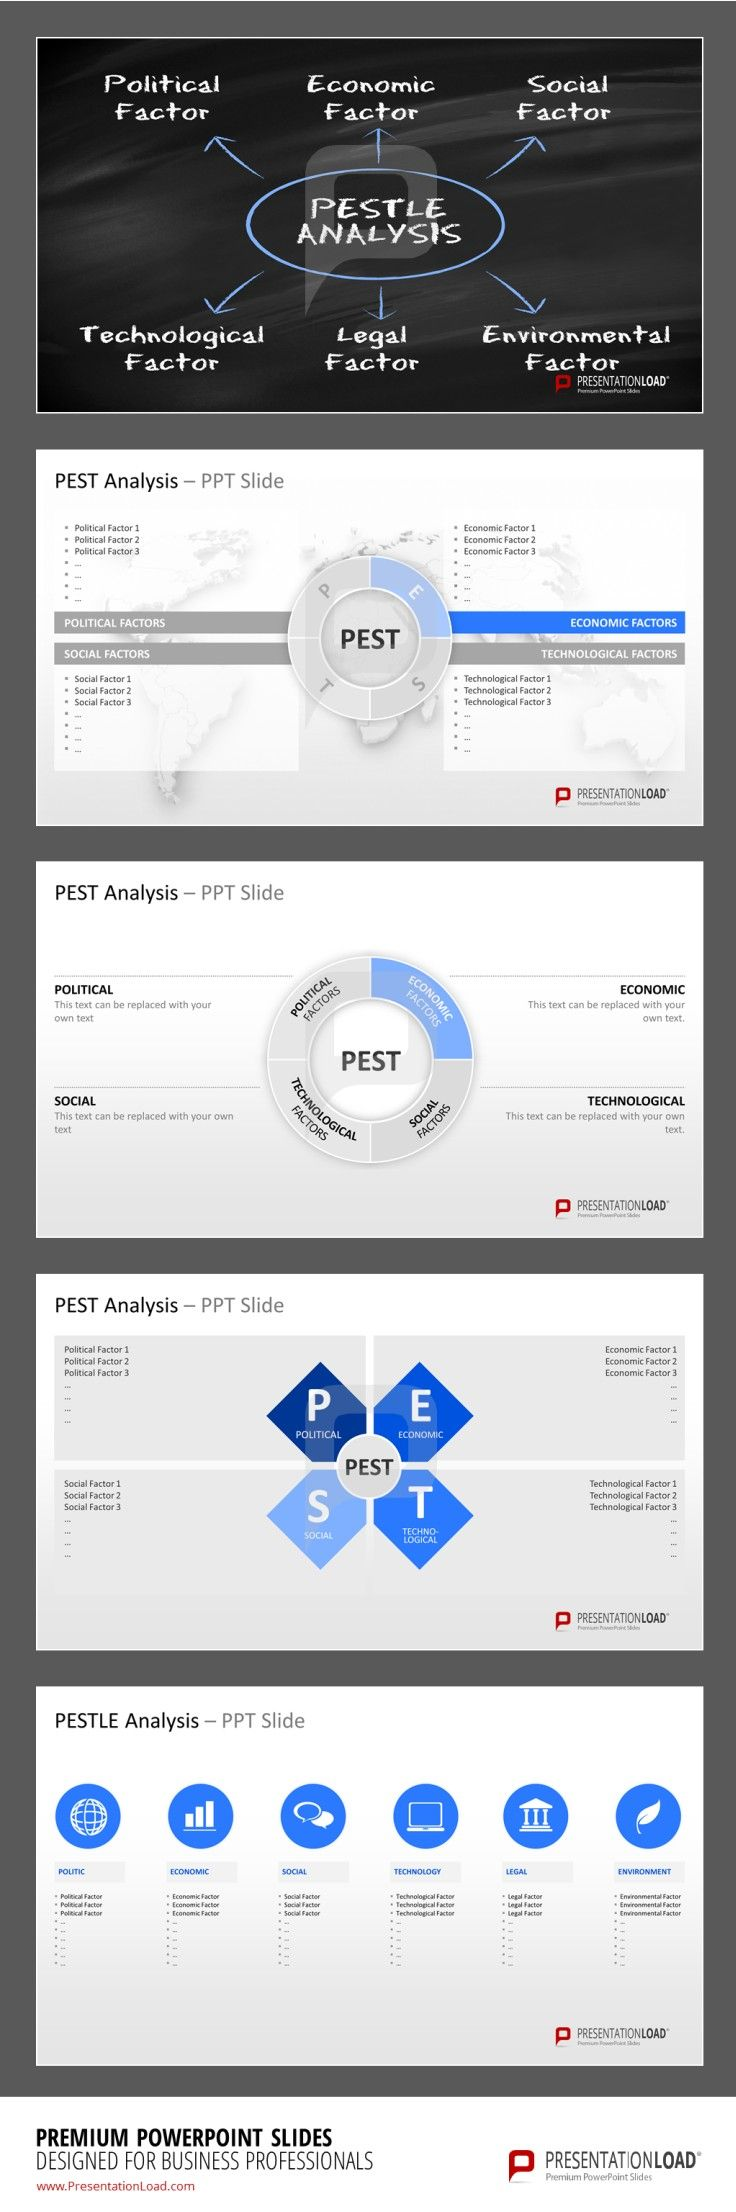 pest analysis political economic social technical analysis The macro environment is analysed through a pest (pestle) analysis pest stands for political, legal, economical and social factors lets discuss each pest factor.